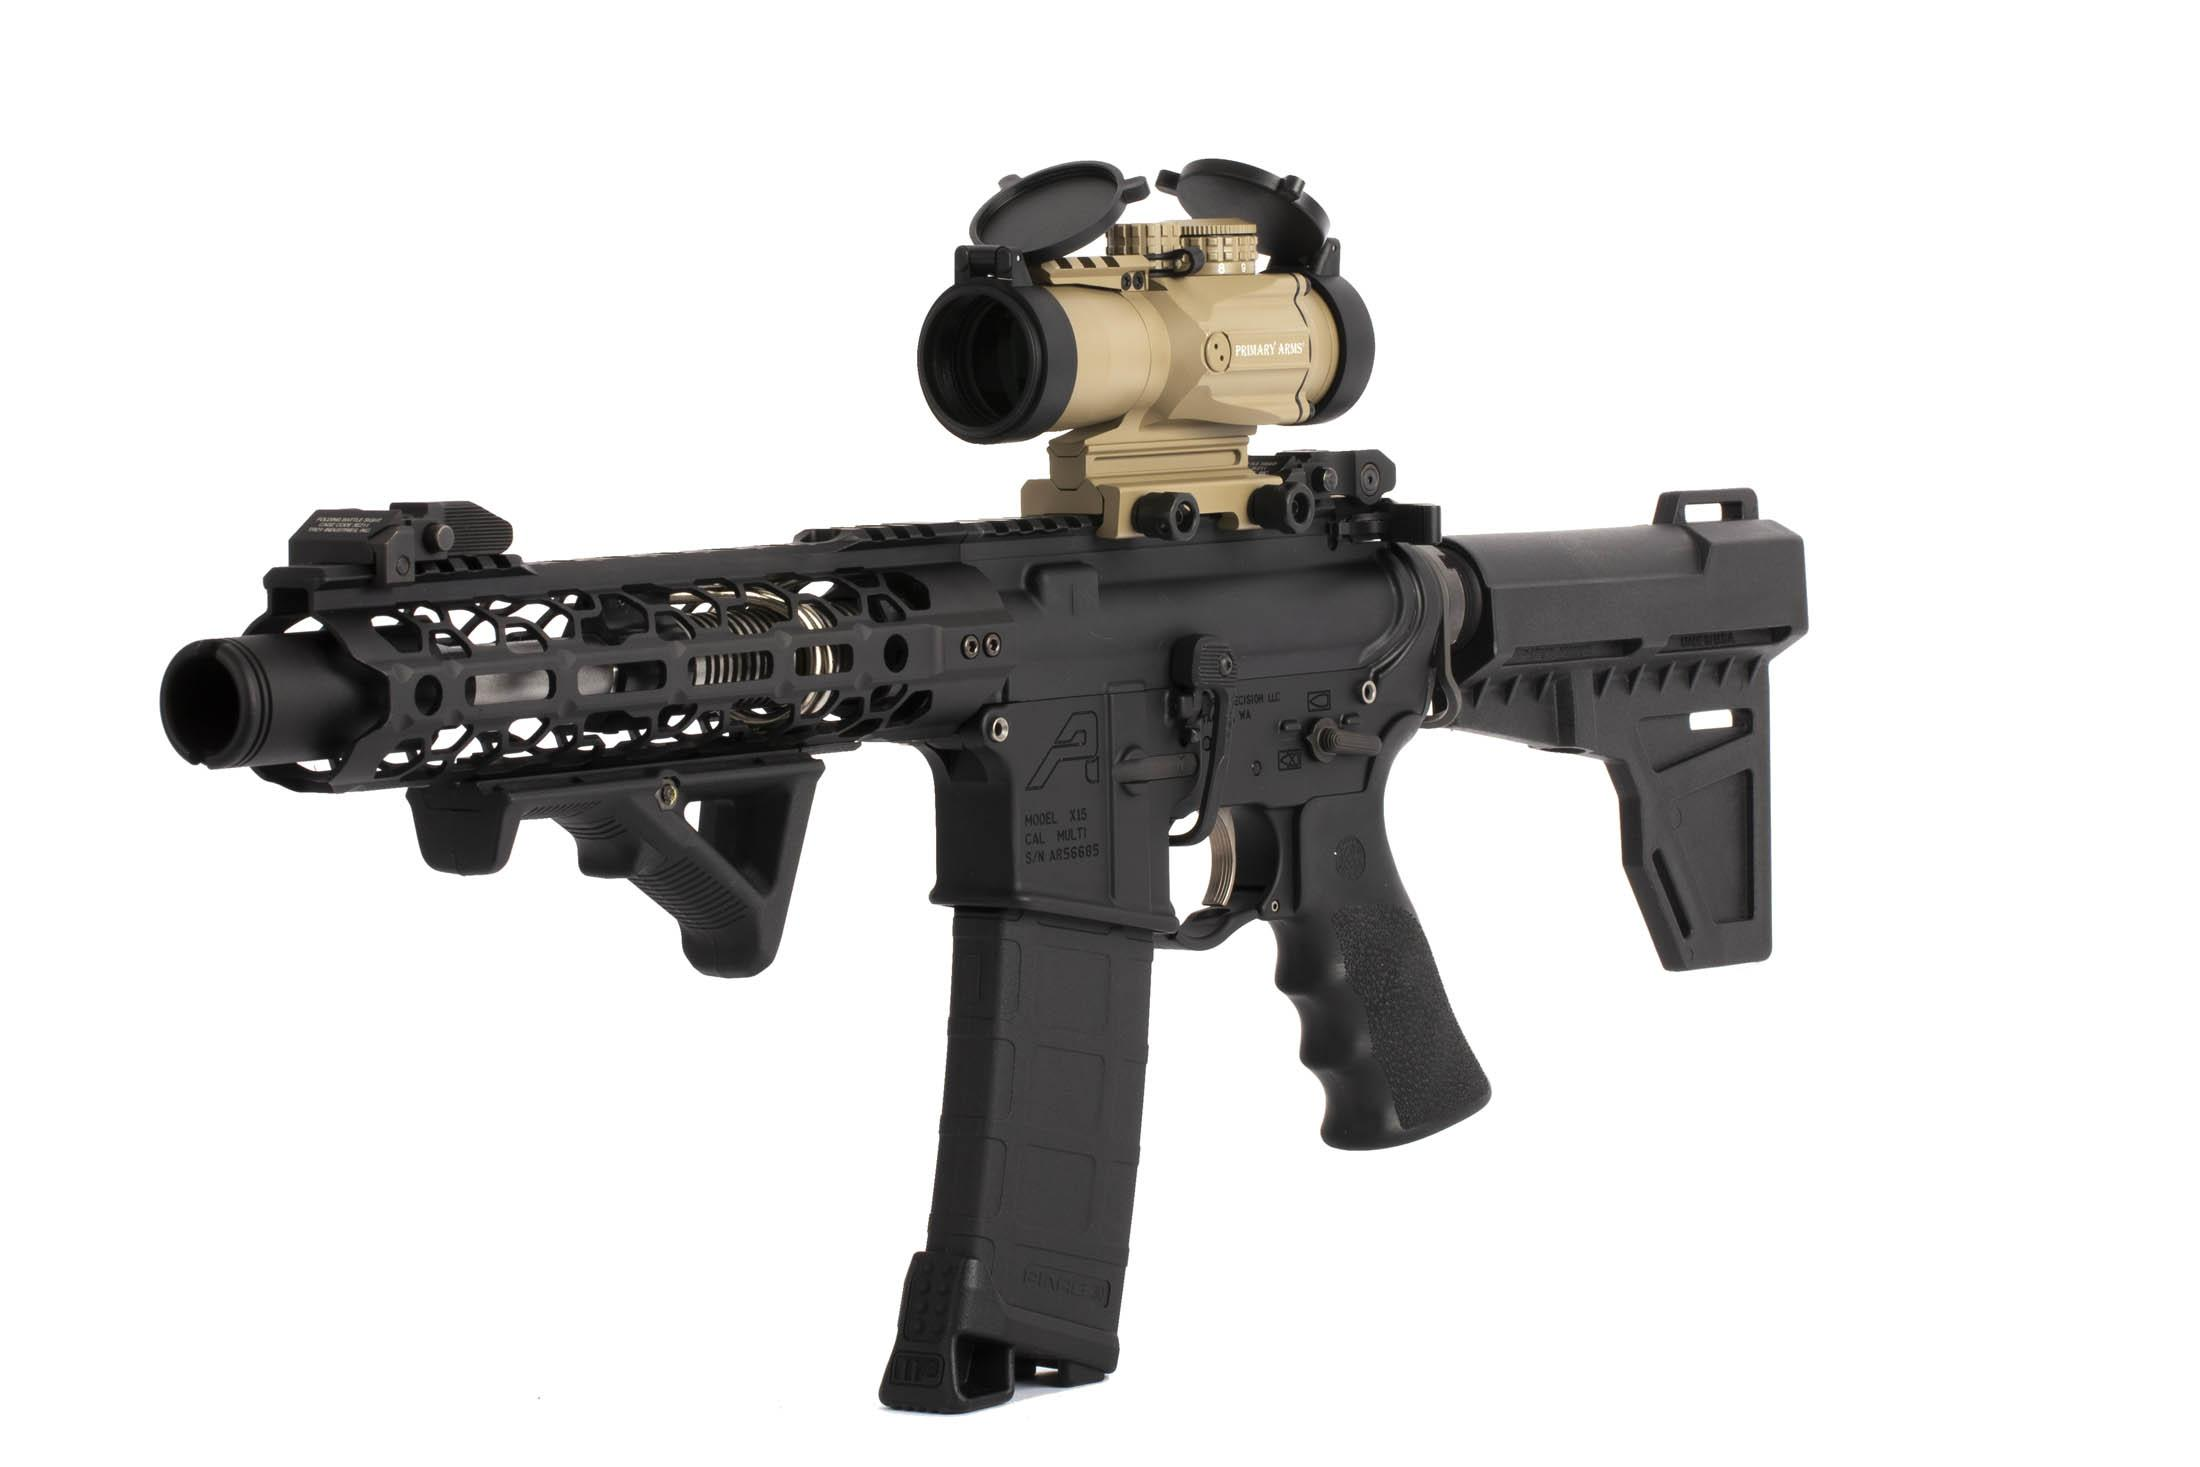 Primary Arms 3X Compact Prism Scope with ACSS CQB 7.62x39 / 300 Reticle without spacer is perfect for AK-47 / AK-74 rifles